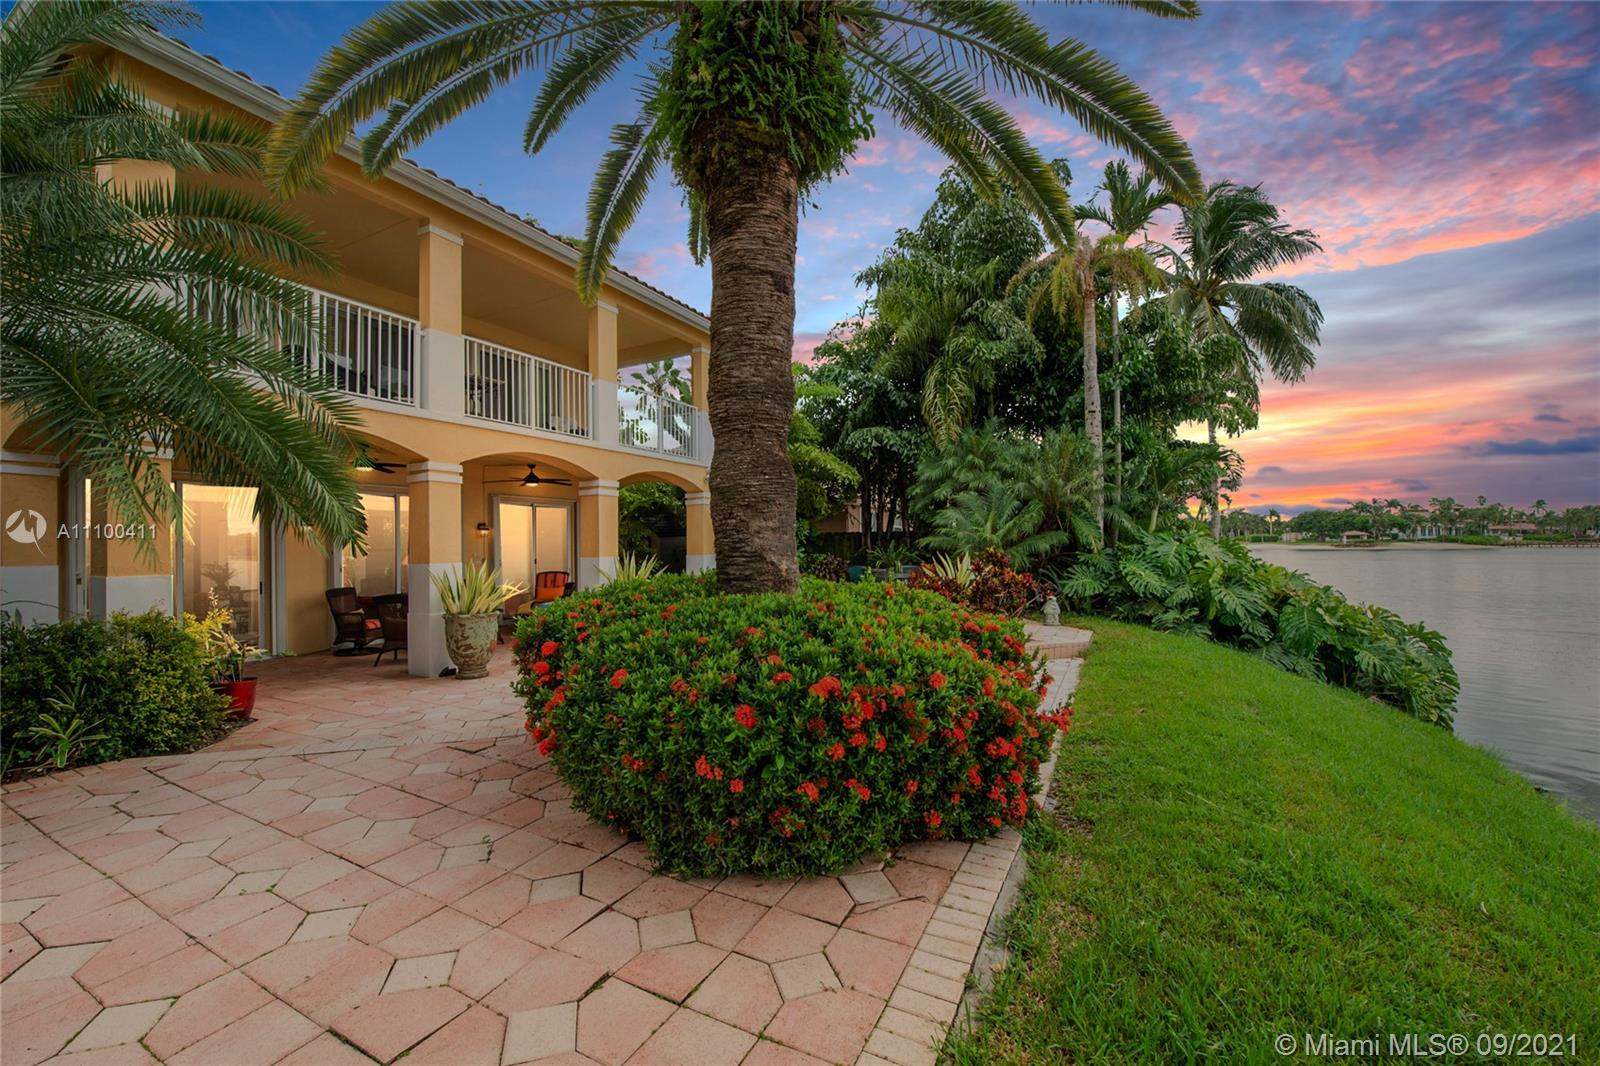 Single Family Home,For Sale,6942 NW 112th Ave, Doral, Florida 33178,Brickell,realty,broker,condos near me